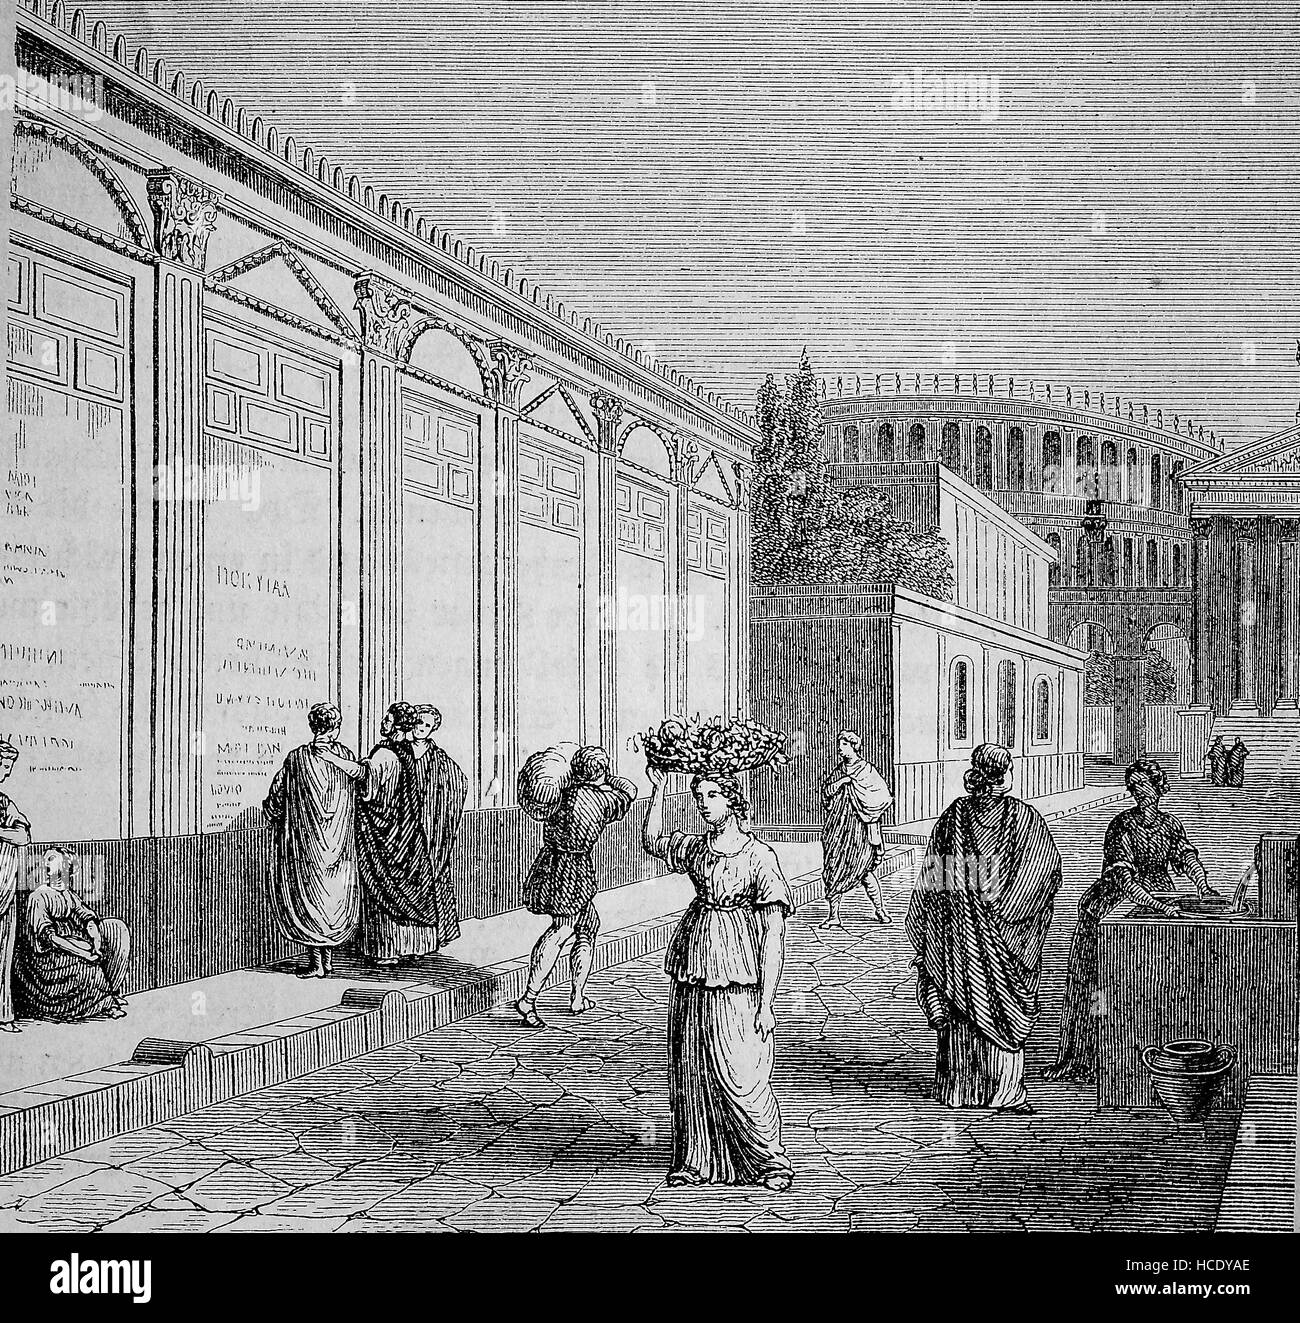 the Album of Pompeji, Pompey, Album, a place where public announcements and commercial advertisements took place, - Stock Image